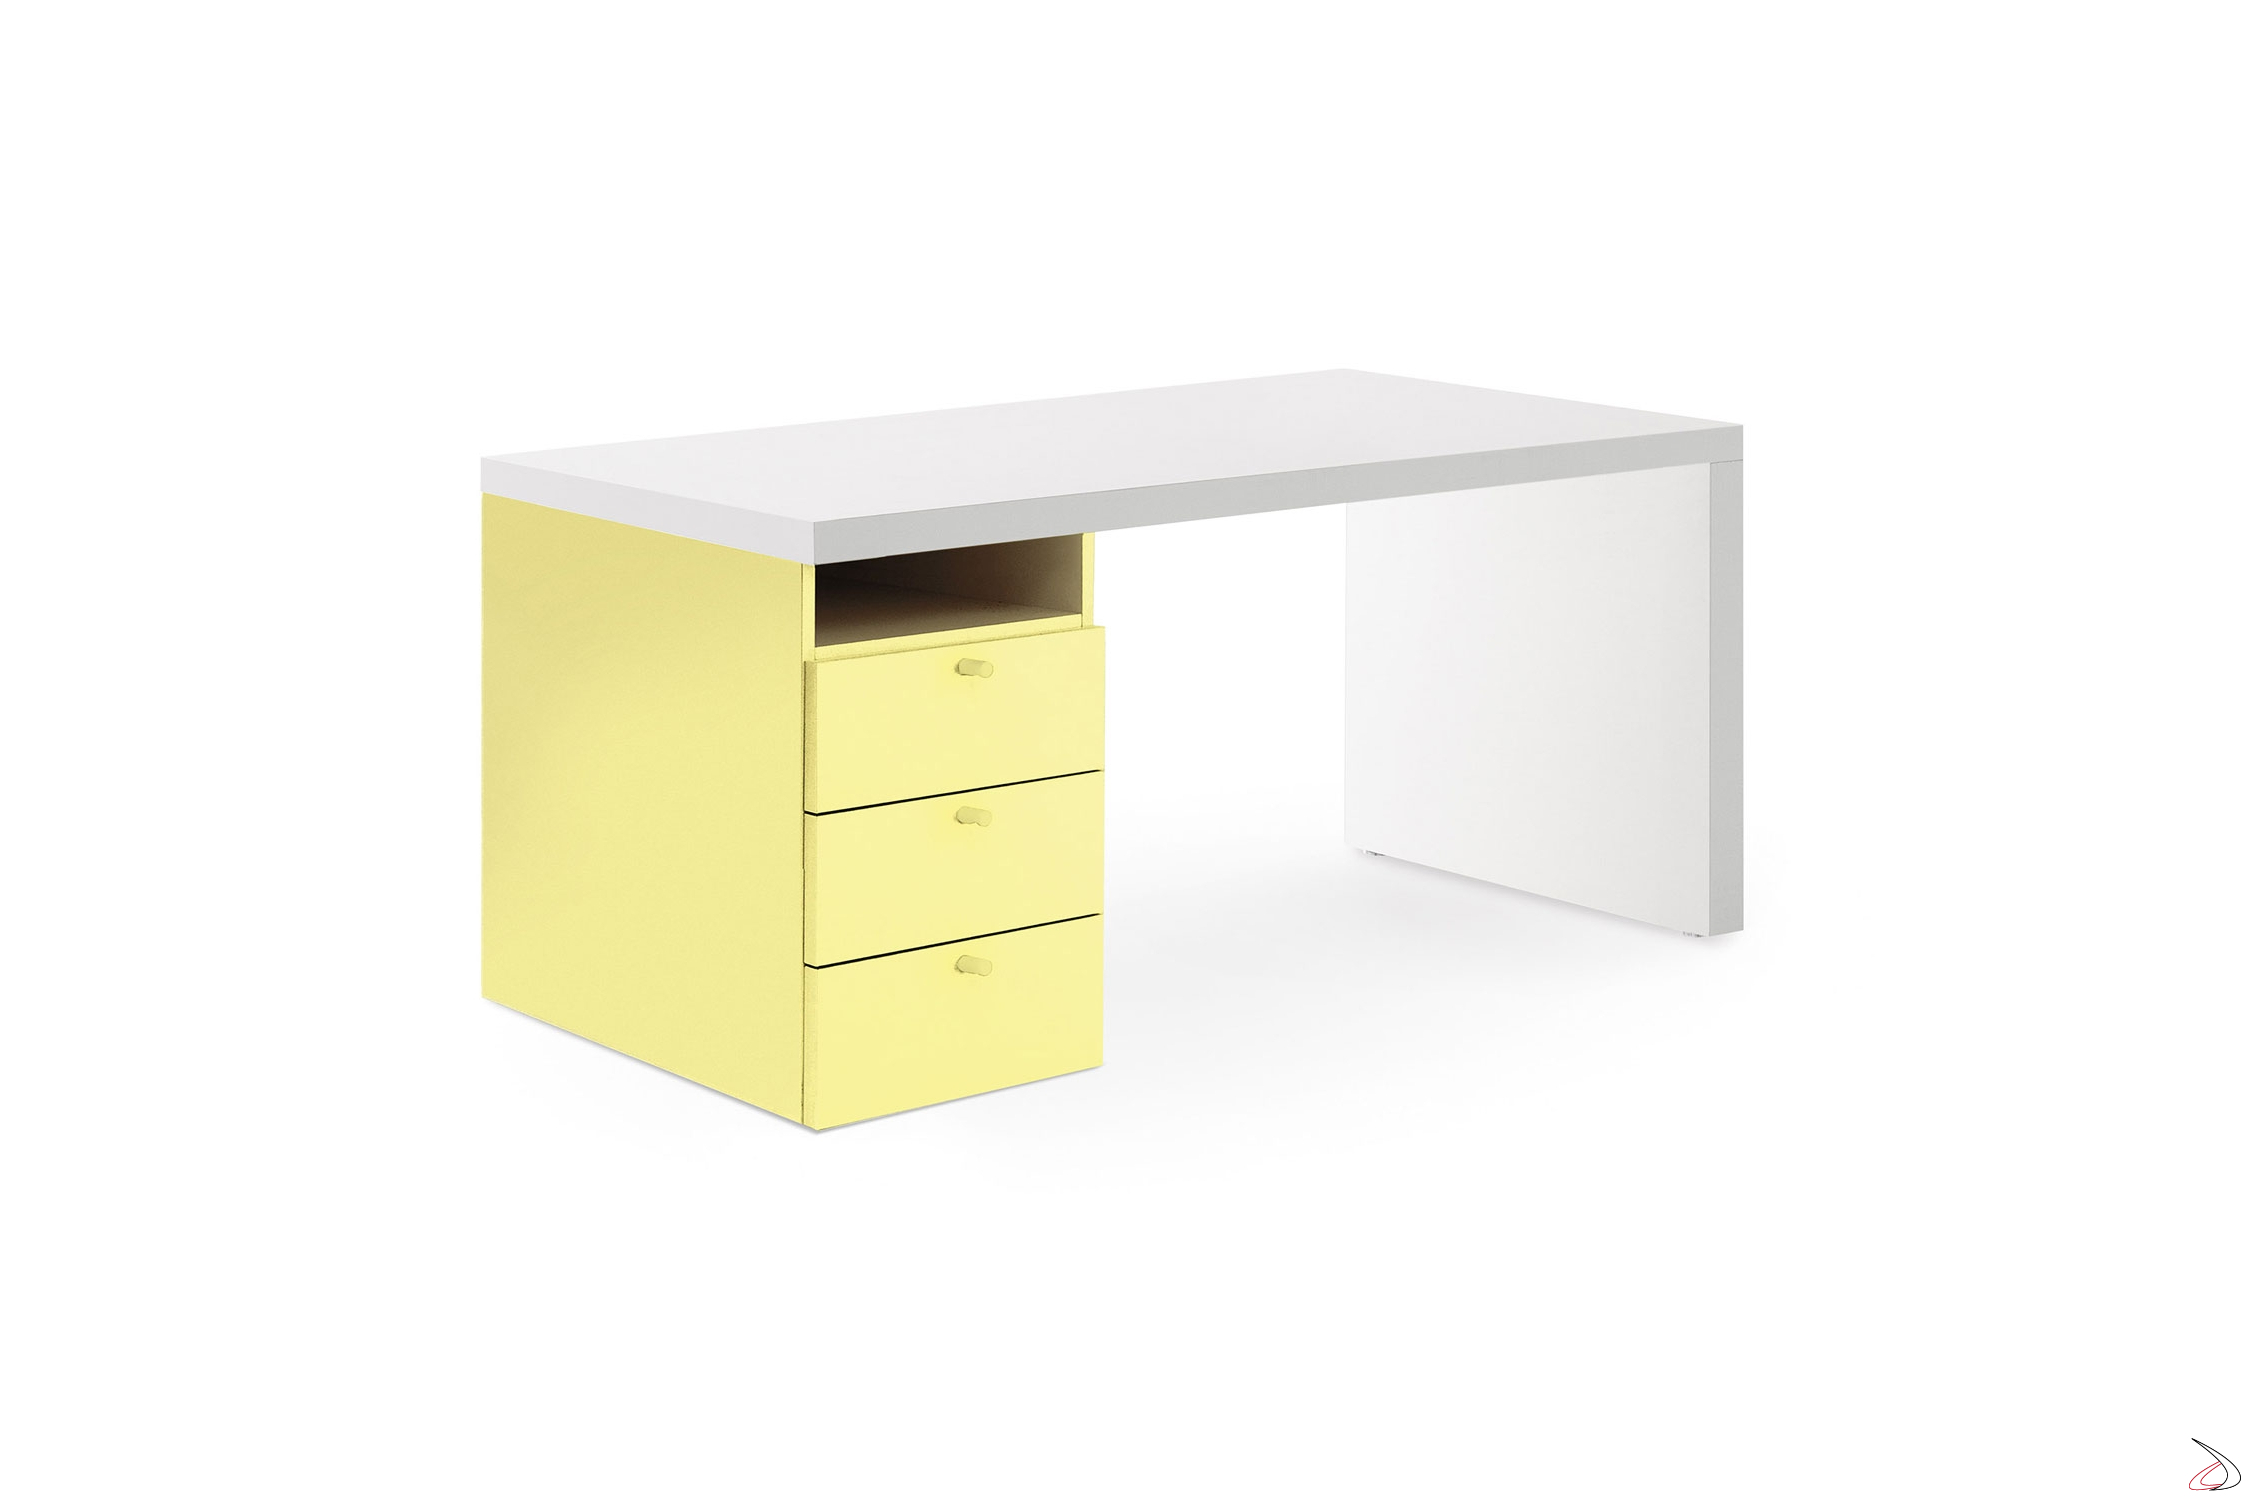 Cassettiere Per Scrivania In Legno.Kids Desk With Ciop Chest Of Drawers Toparredi Arredo Design